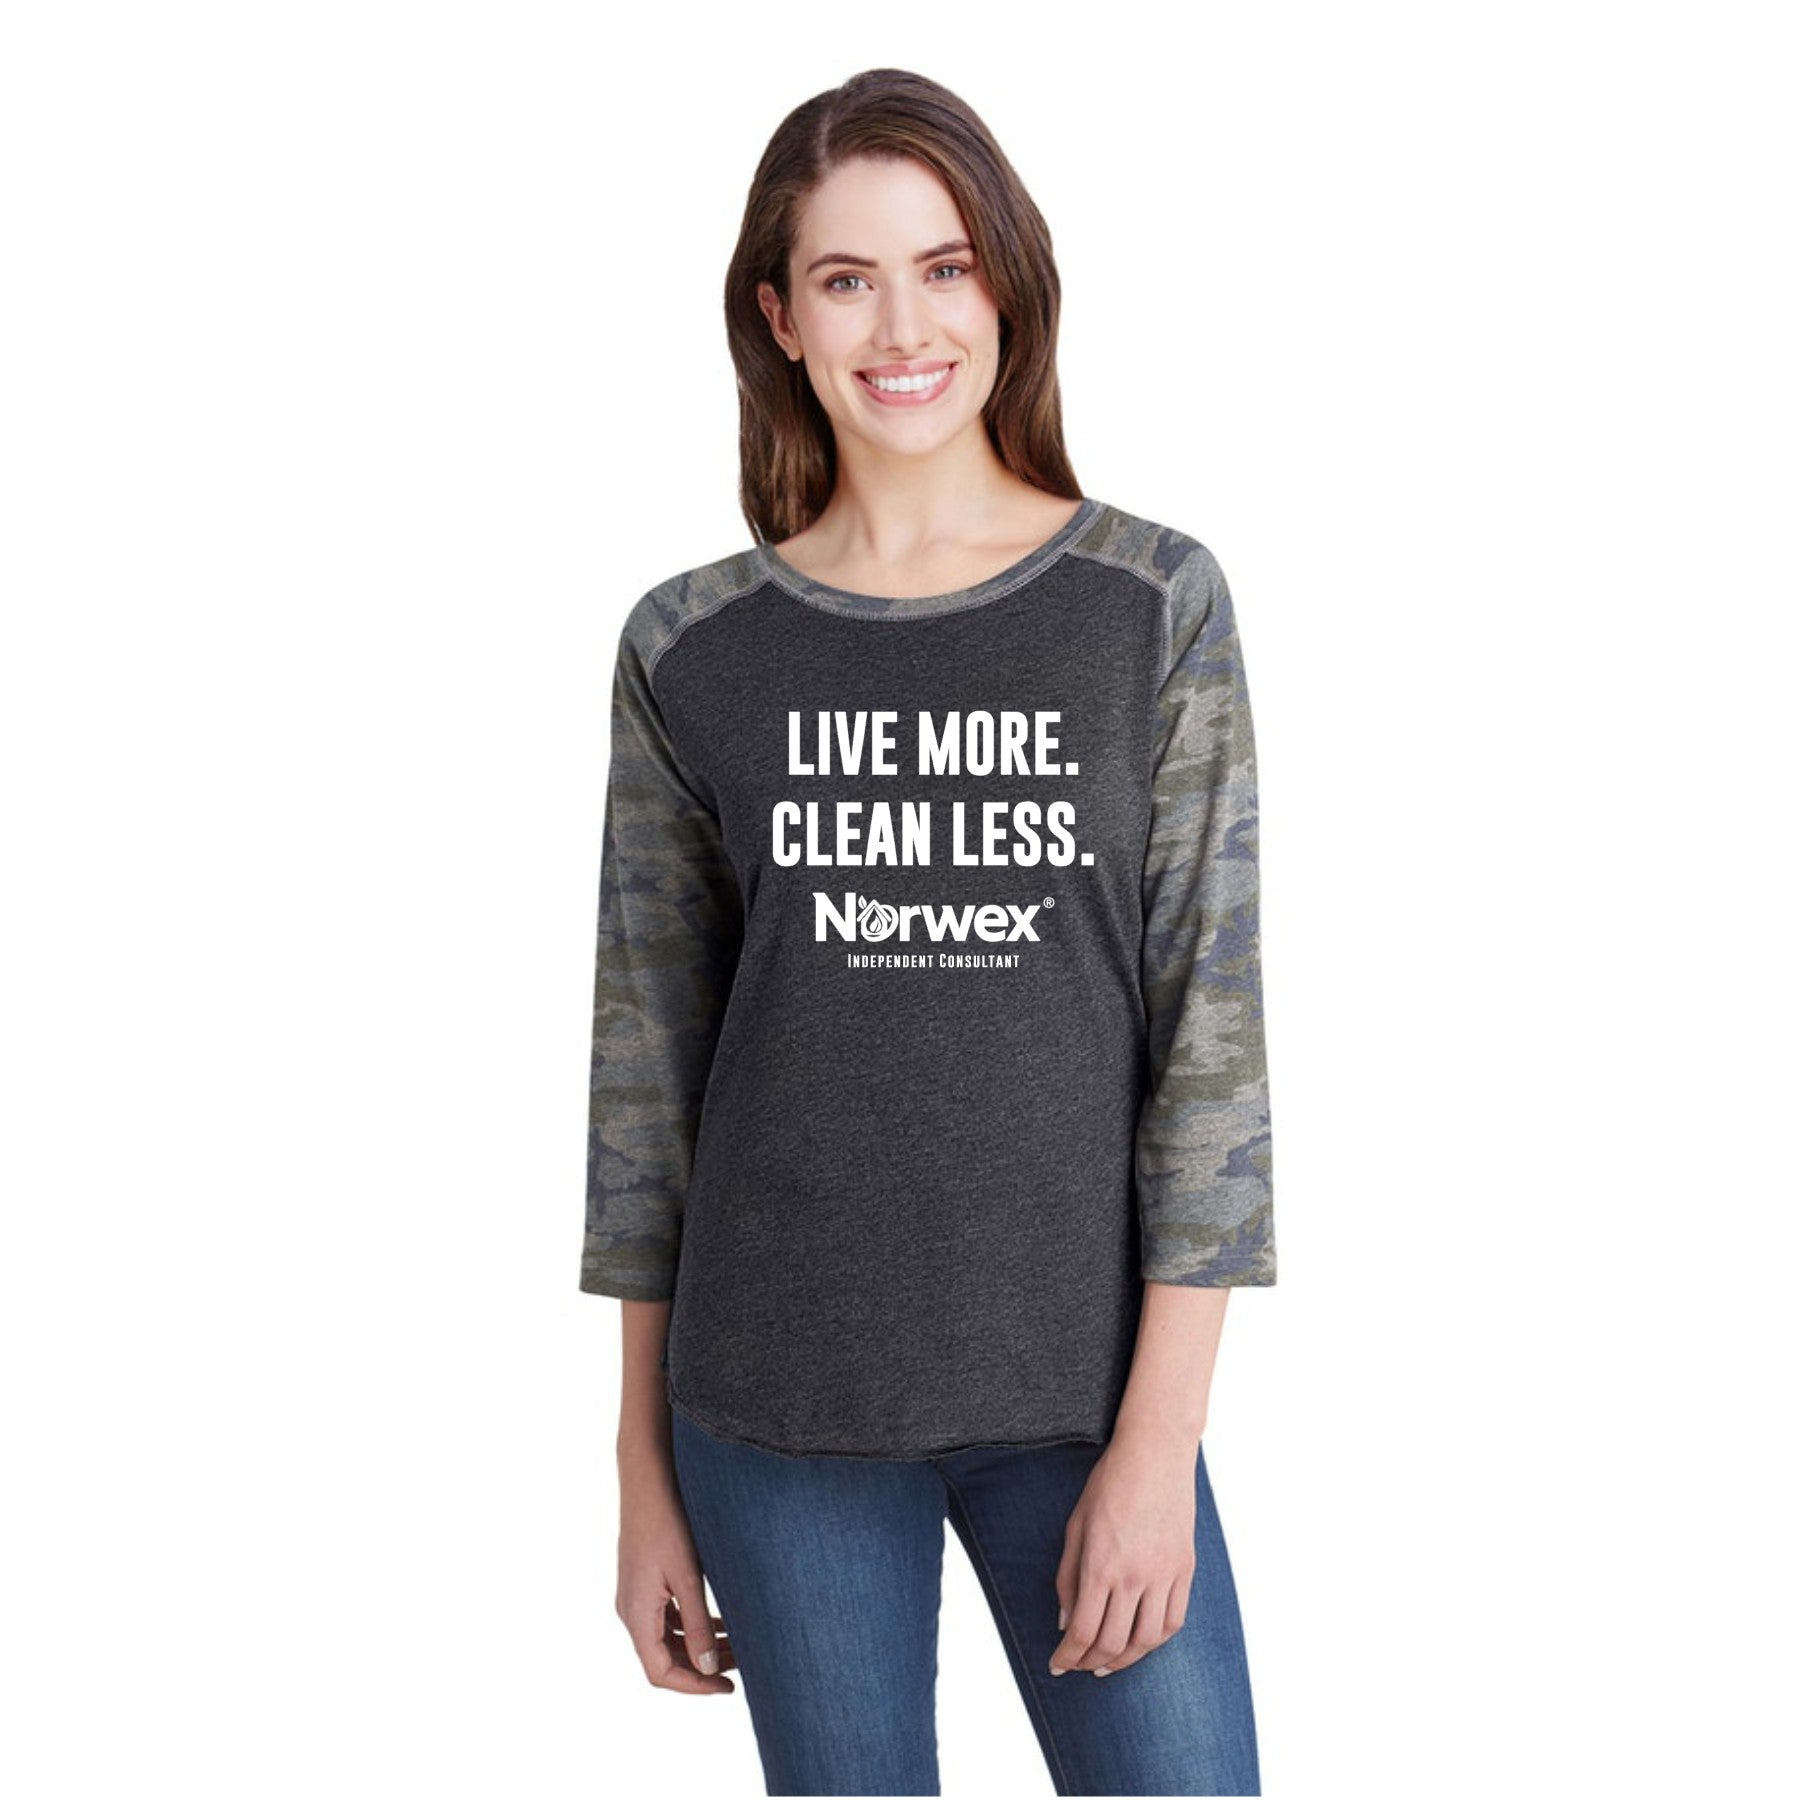 Norwex Independent Consutlant Camo Baseball Tee / Mission Possible. Live More. Clean Less.